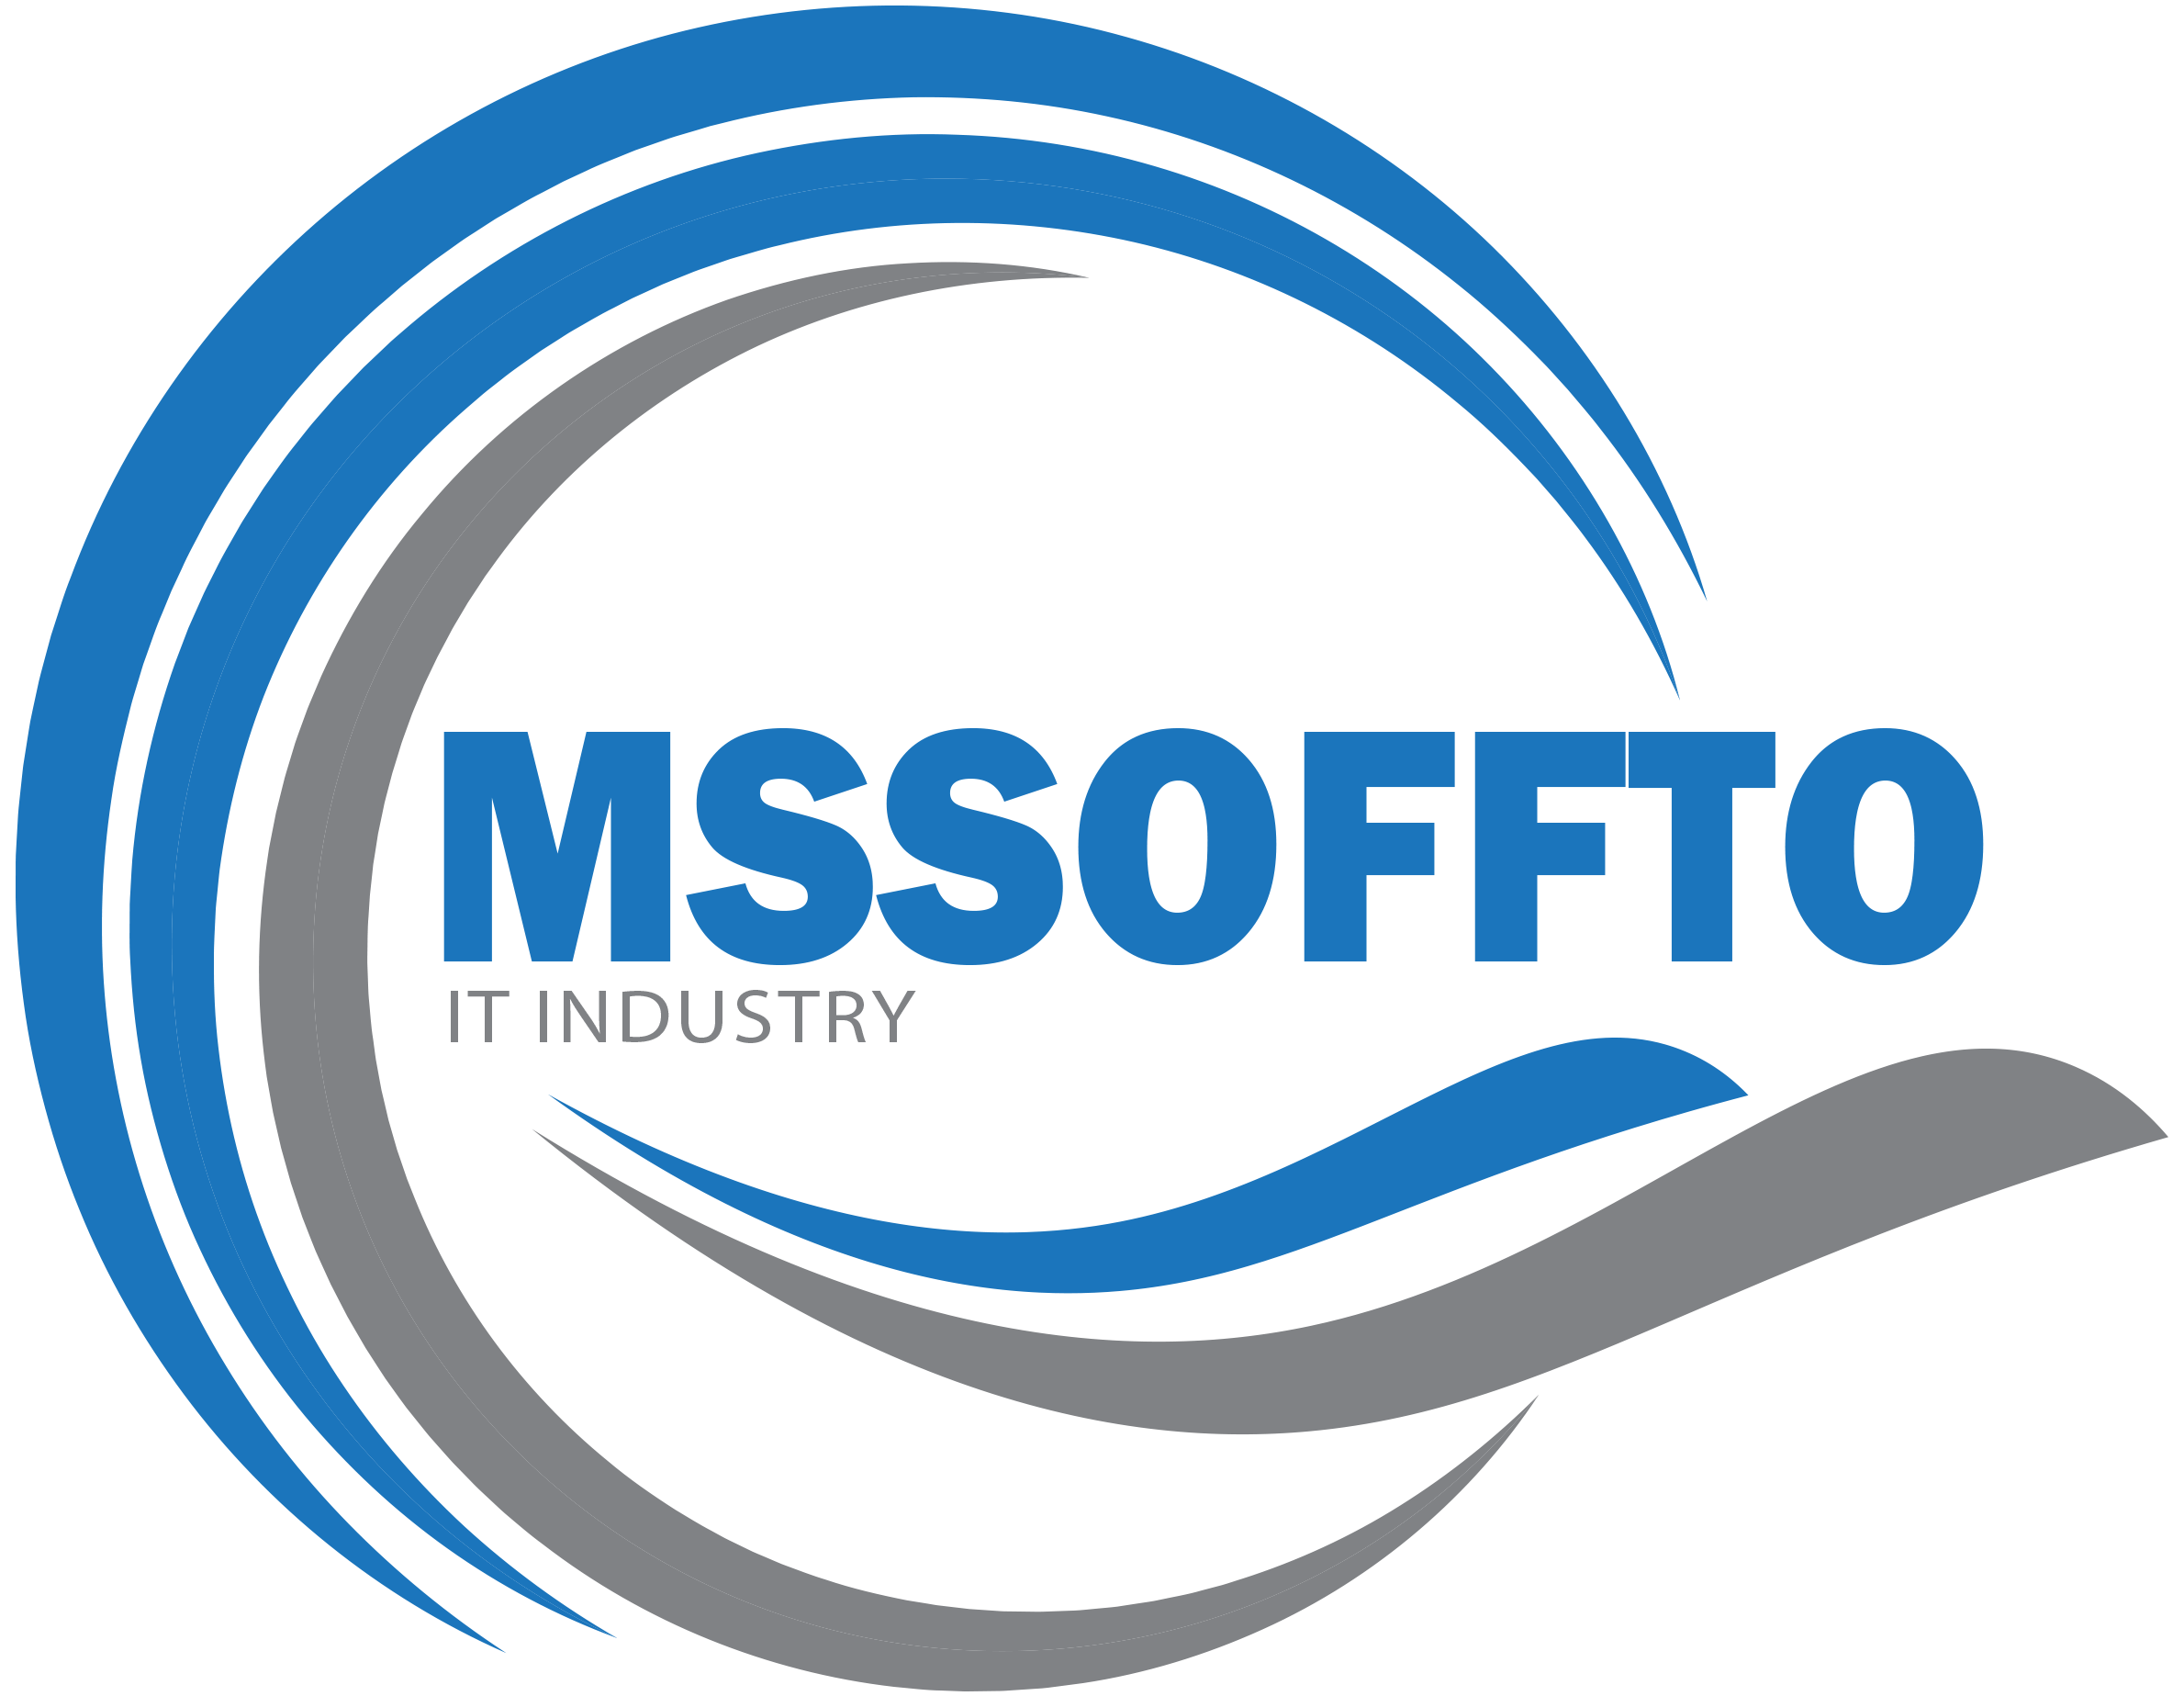 MSsoffto Learn Digital Marketing